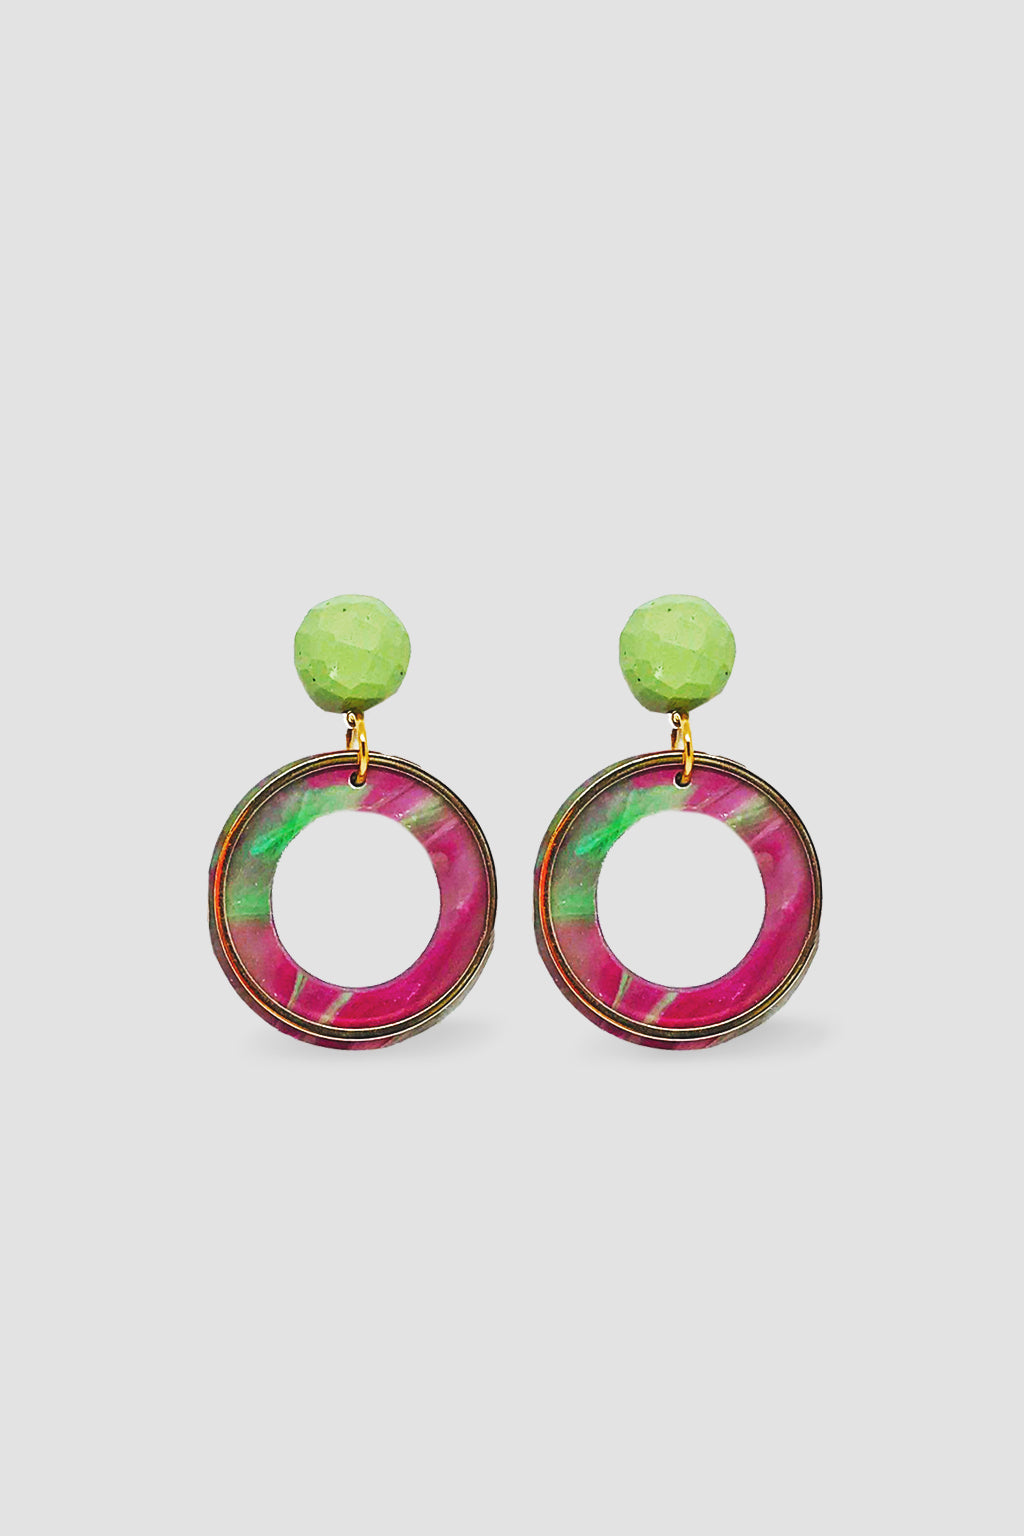 Down The Rabbit Hole-Geo Statement Dangle Earring - Citrus Pink-Mott and Mulberry